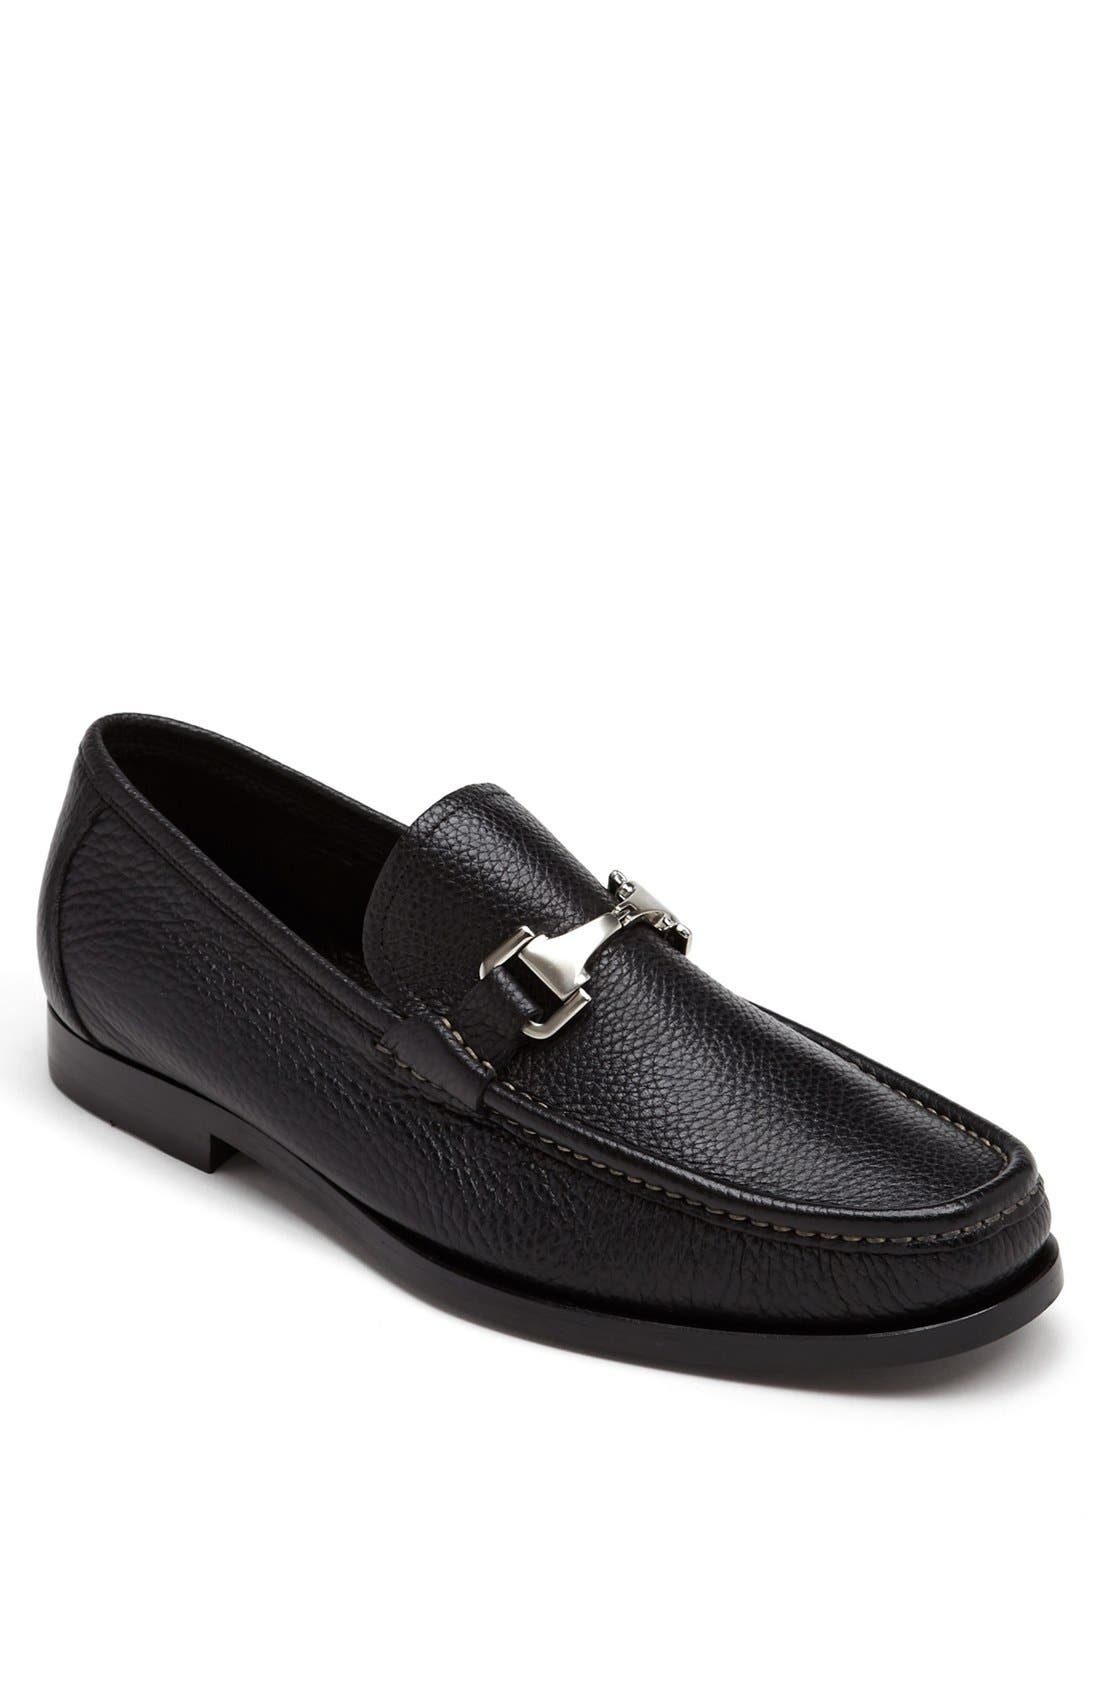 Allen Edmonds 'Firenze' Bit Loafer (Men)